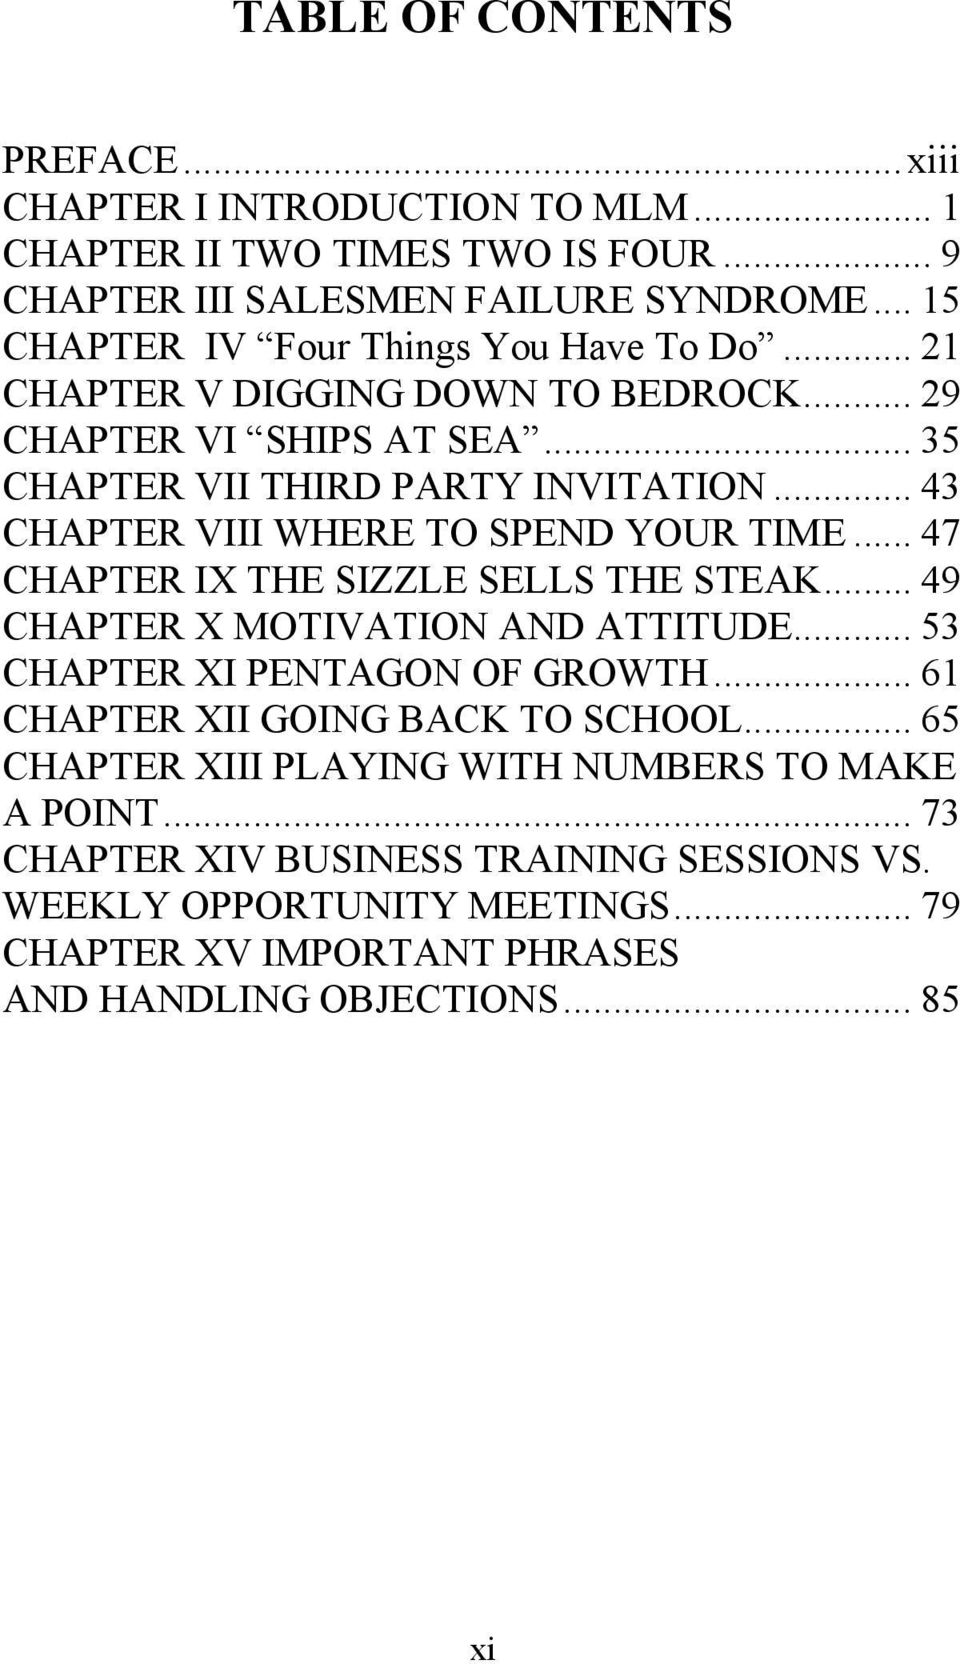 .. 43 CHAPTER VIII WHERE TO SPEND YOUR TIME... 47 CHAPTER IX THE SIZZLE SELLS THE STEAK... 49 CHAPTER X MOTIVATION AND ATTITUDE... 53 CHAPTER XI PENTAGON OF GROWTH.